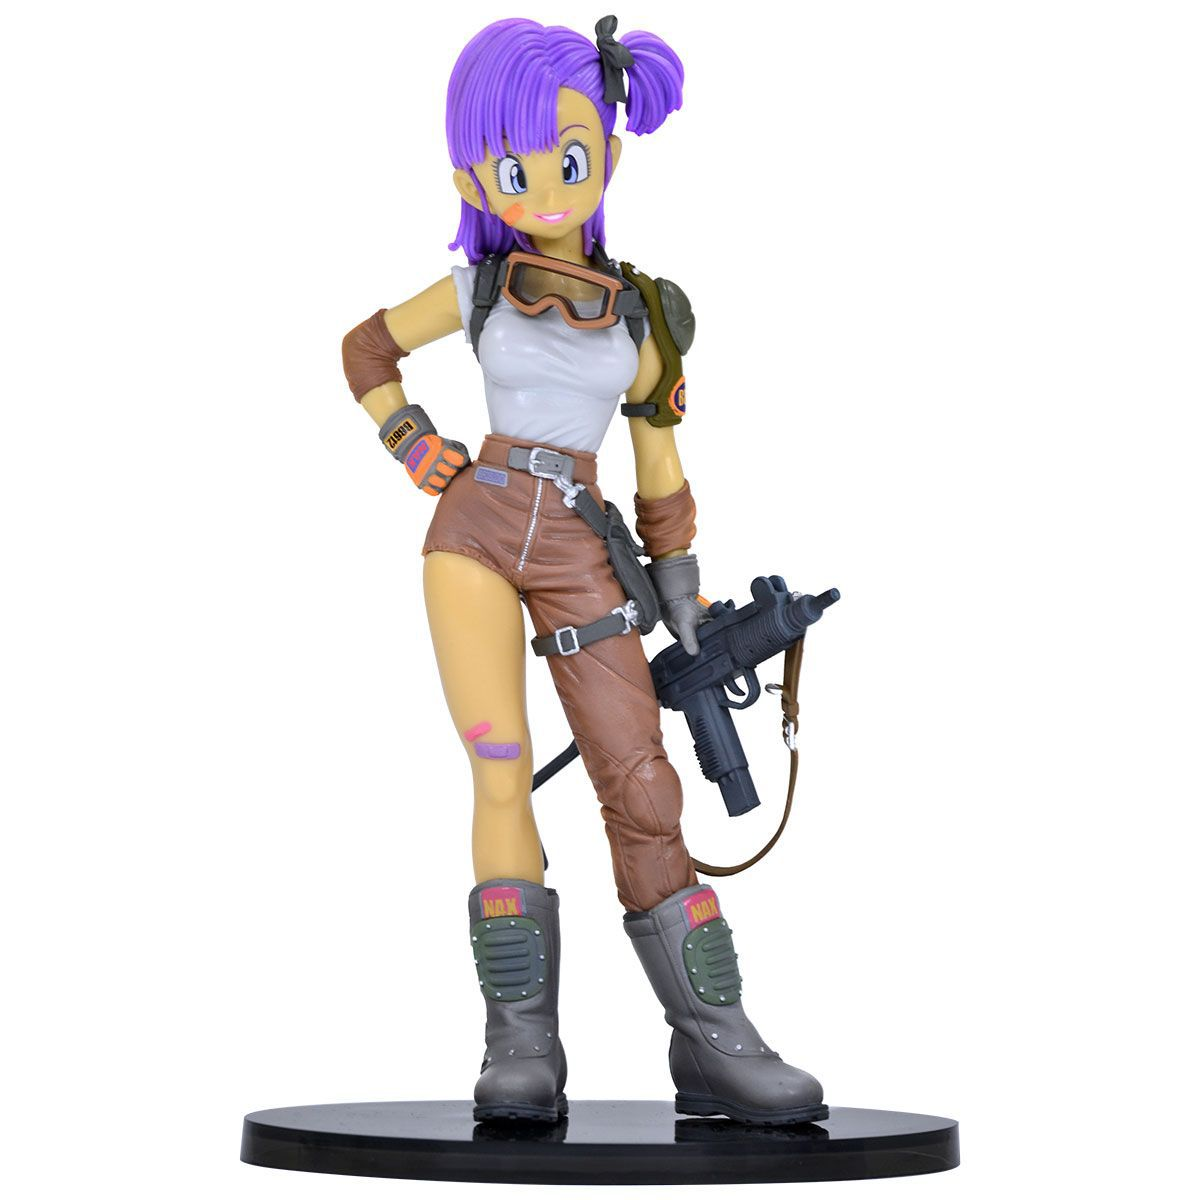 Estátua Bulma: Dragon Ball - Banpresto - CG